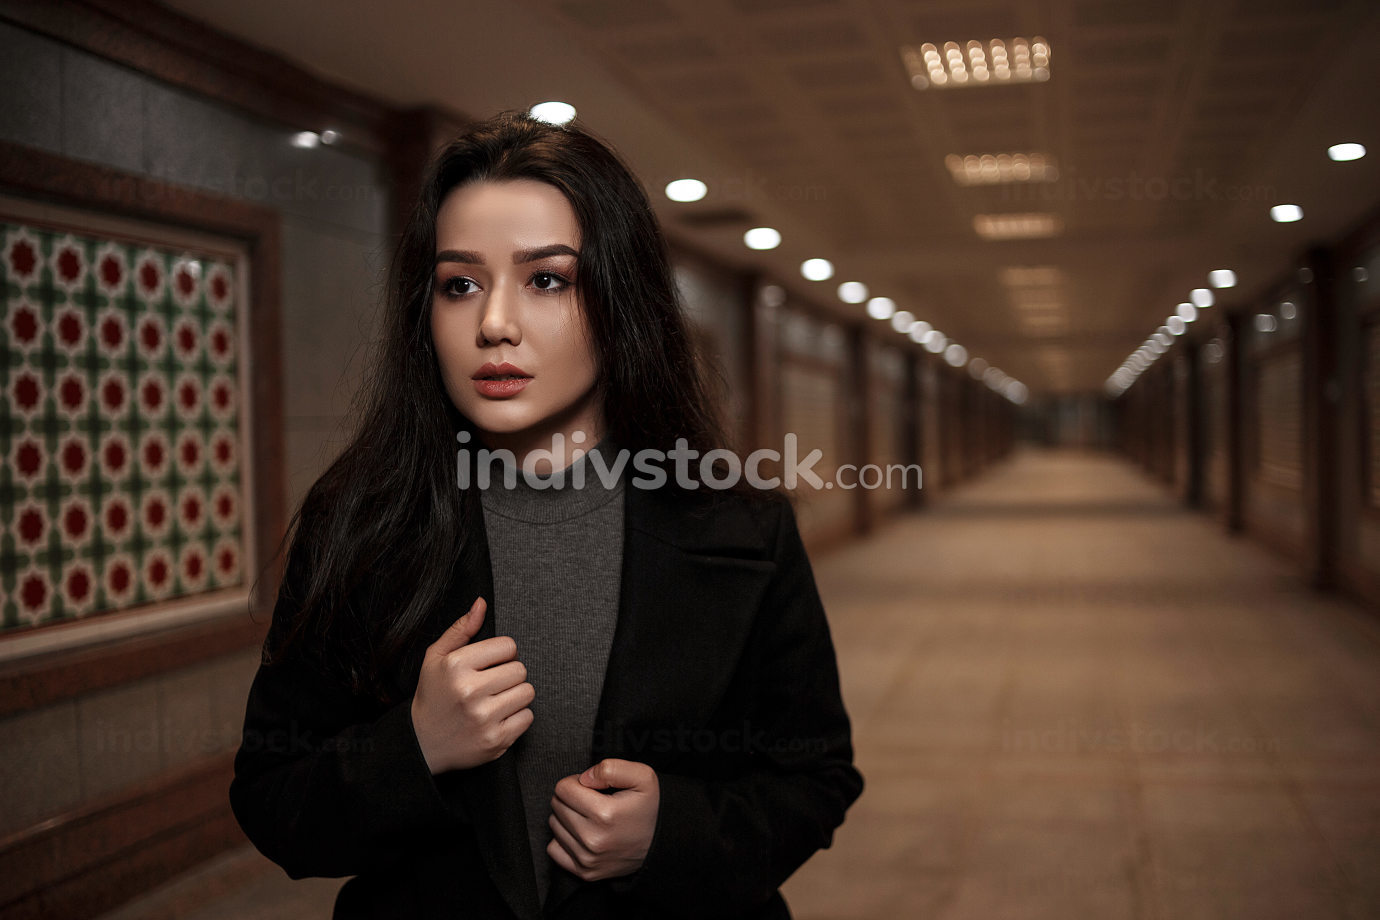 a young, beautiful woman walks through an underpass at night, looking back uneasily